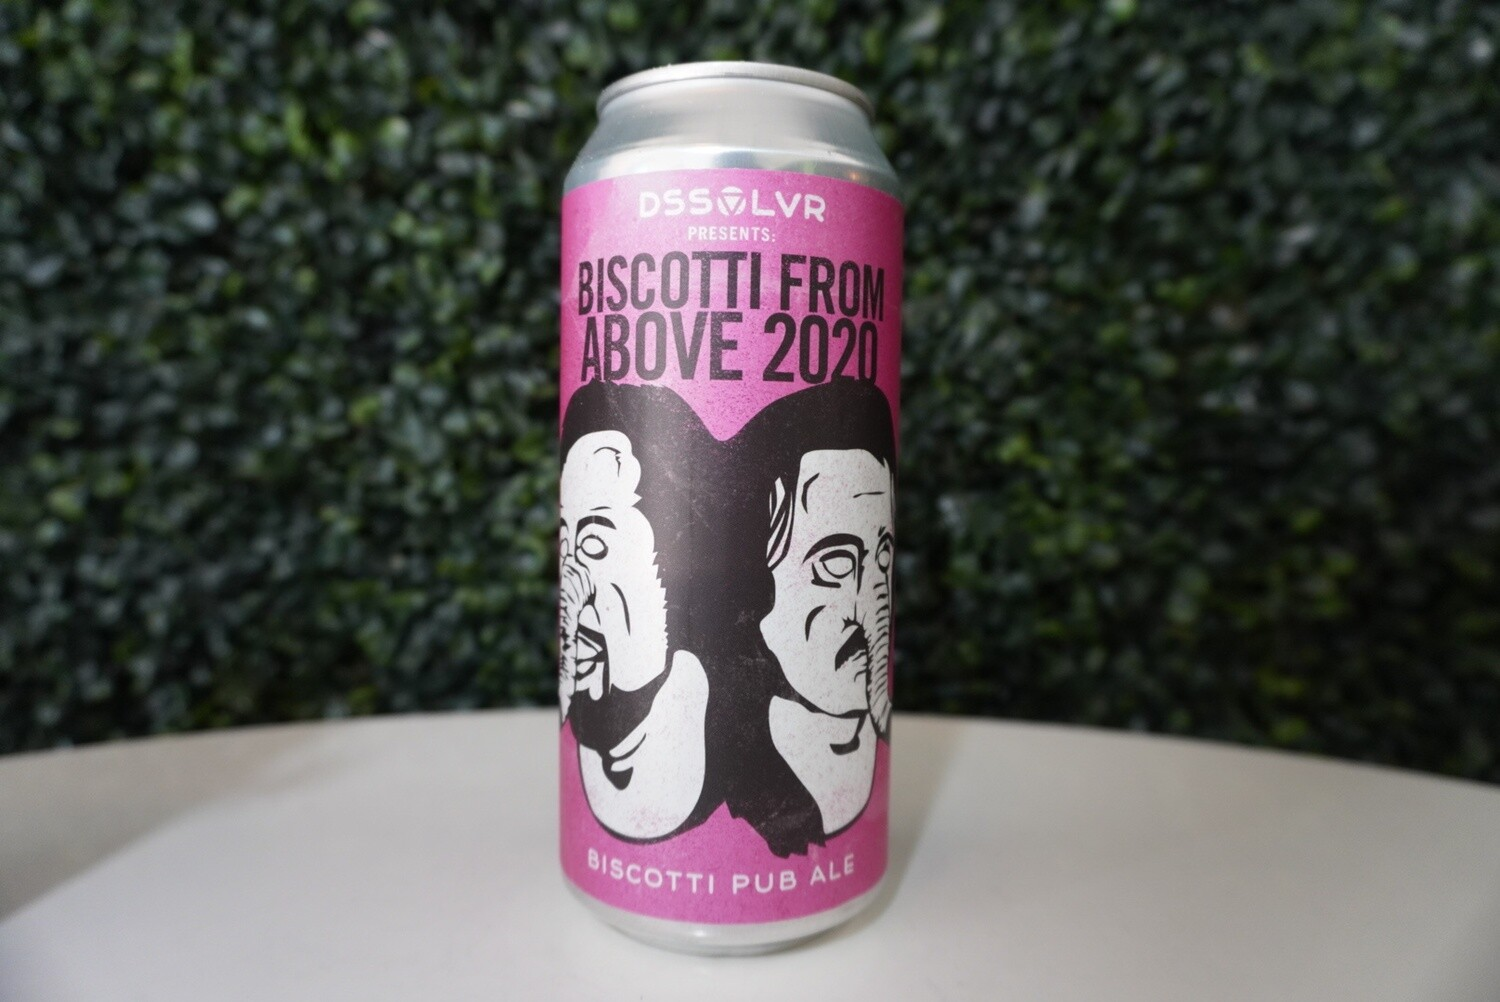 DSSOLVR - Biscotti From Above - English Pub Ale - 3.8% ABV - 16oz Can